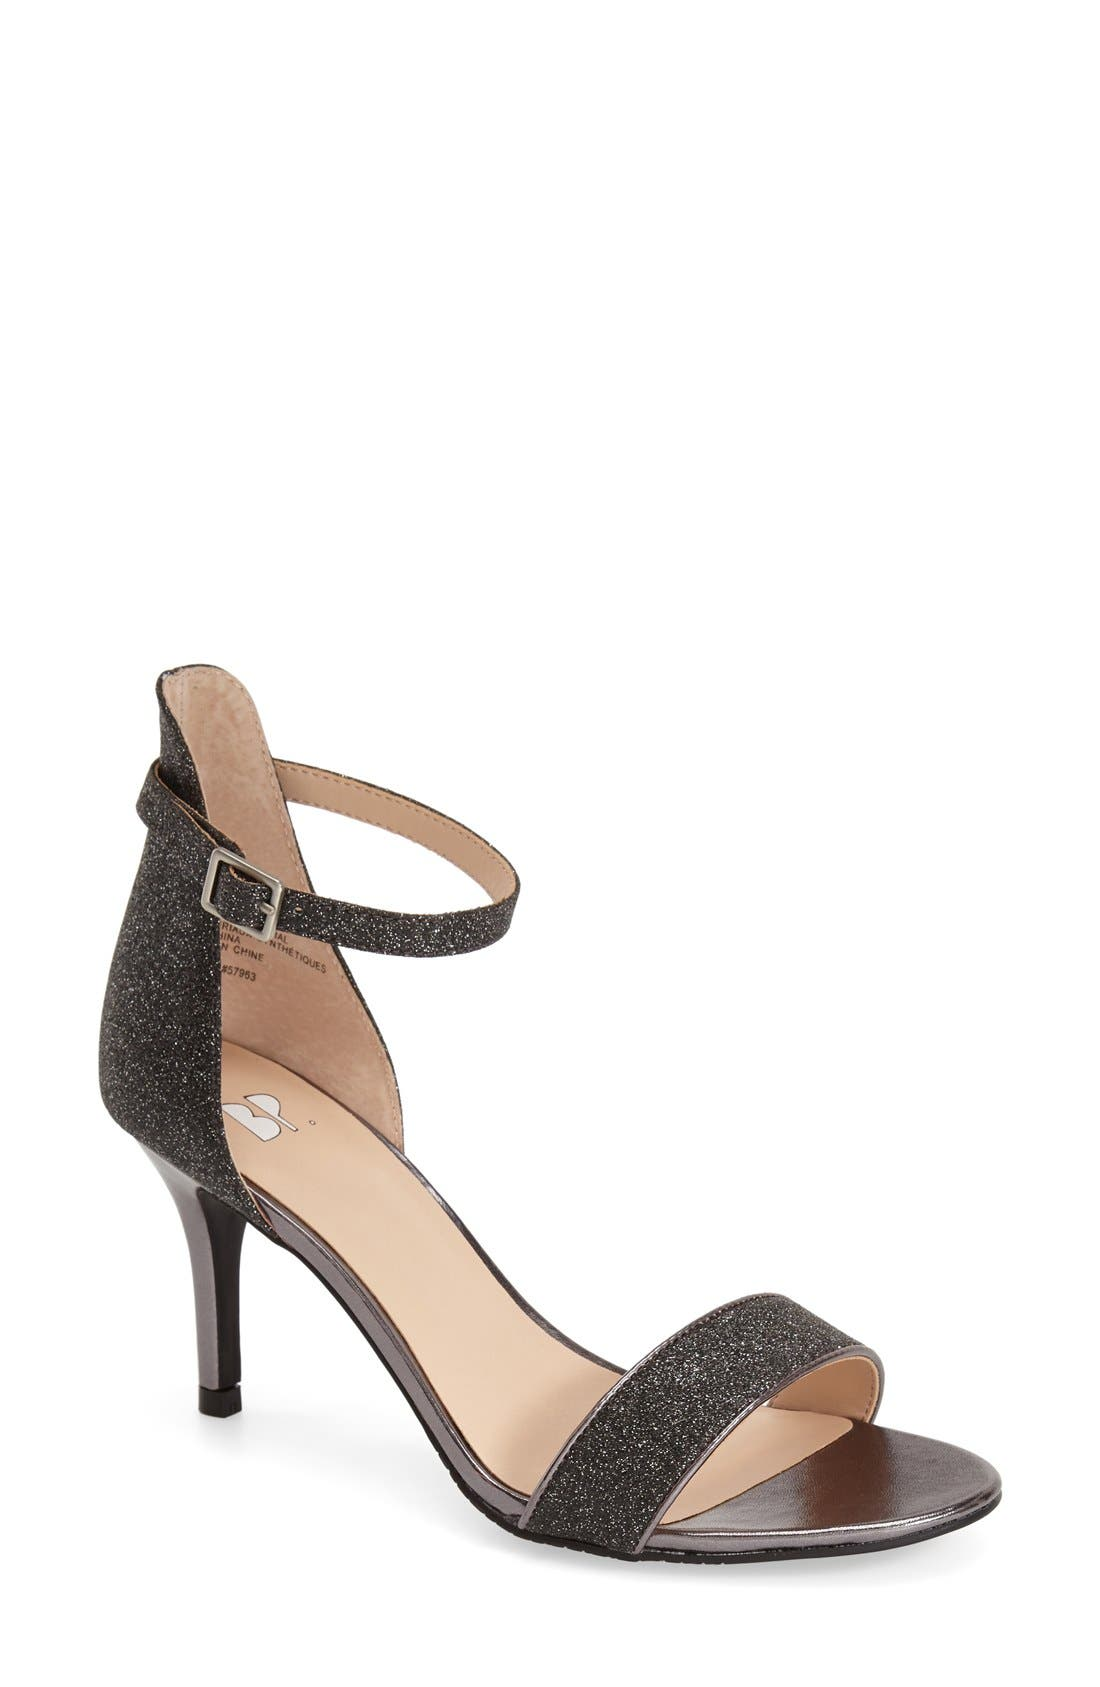 'Luminate' Open Toe Dress Sandal,                             Main thumbnail 16, color,